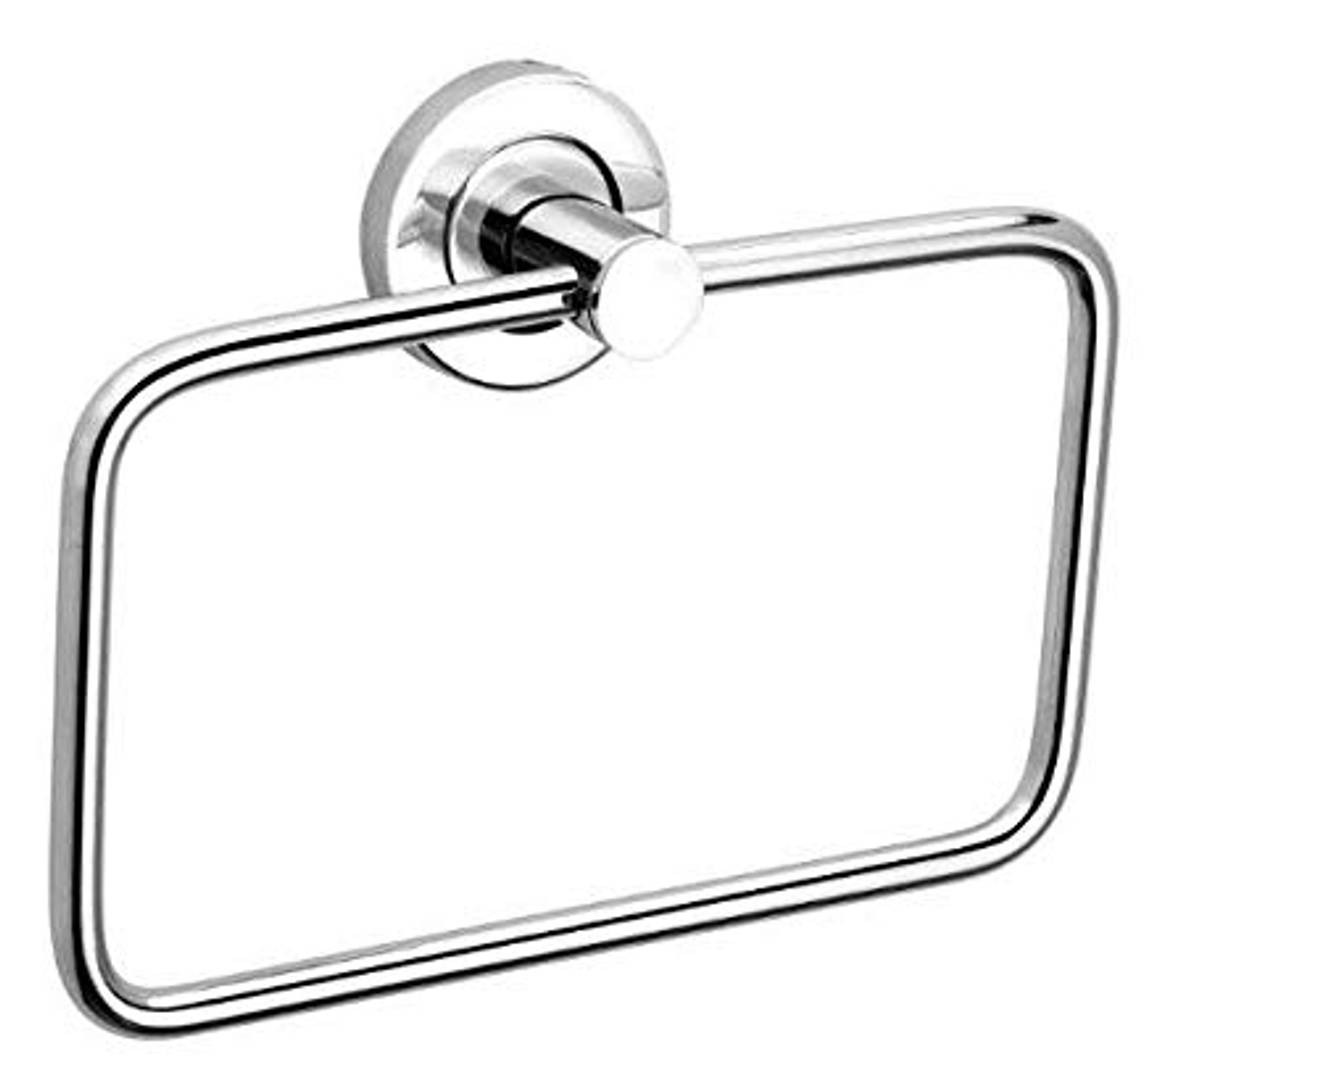 Stainless Steel Towel Ring/Napkin Ring - Bathroom Towel Holder